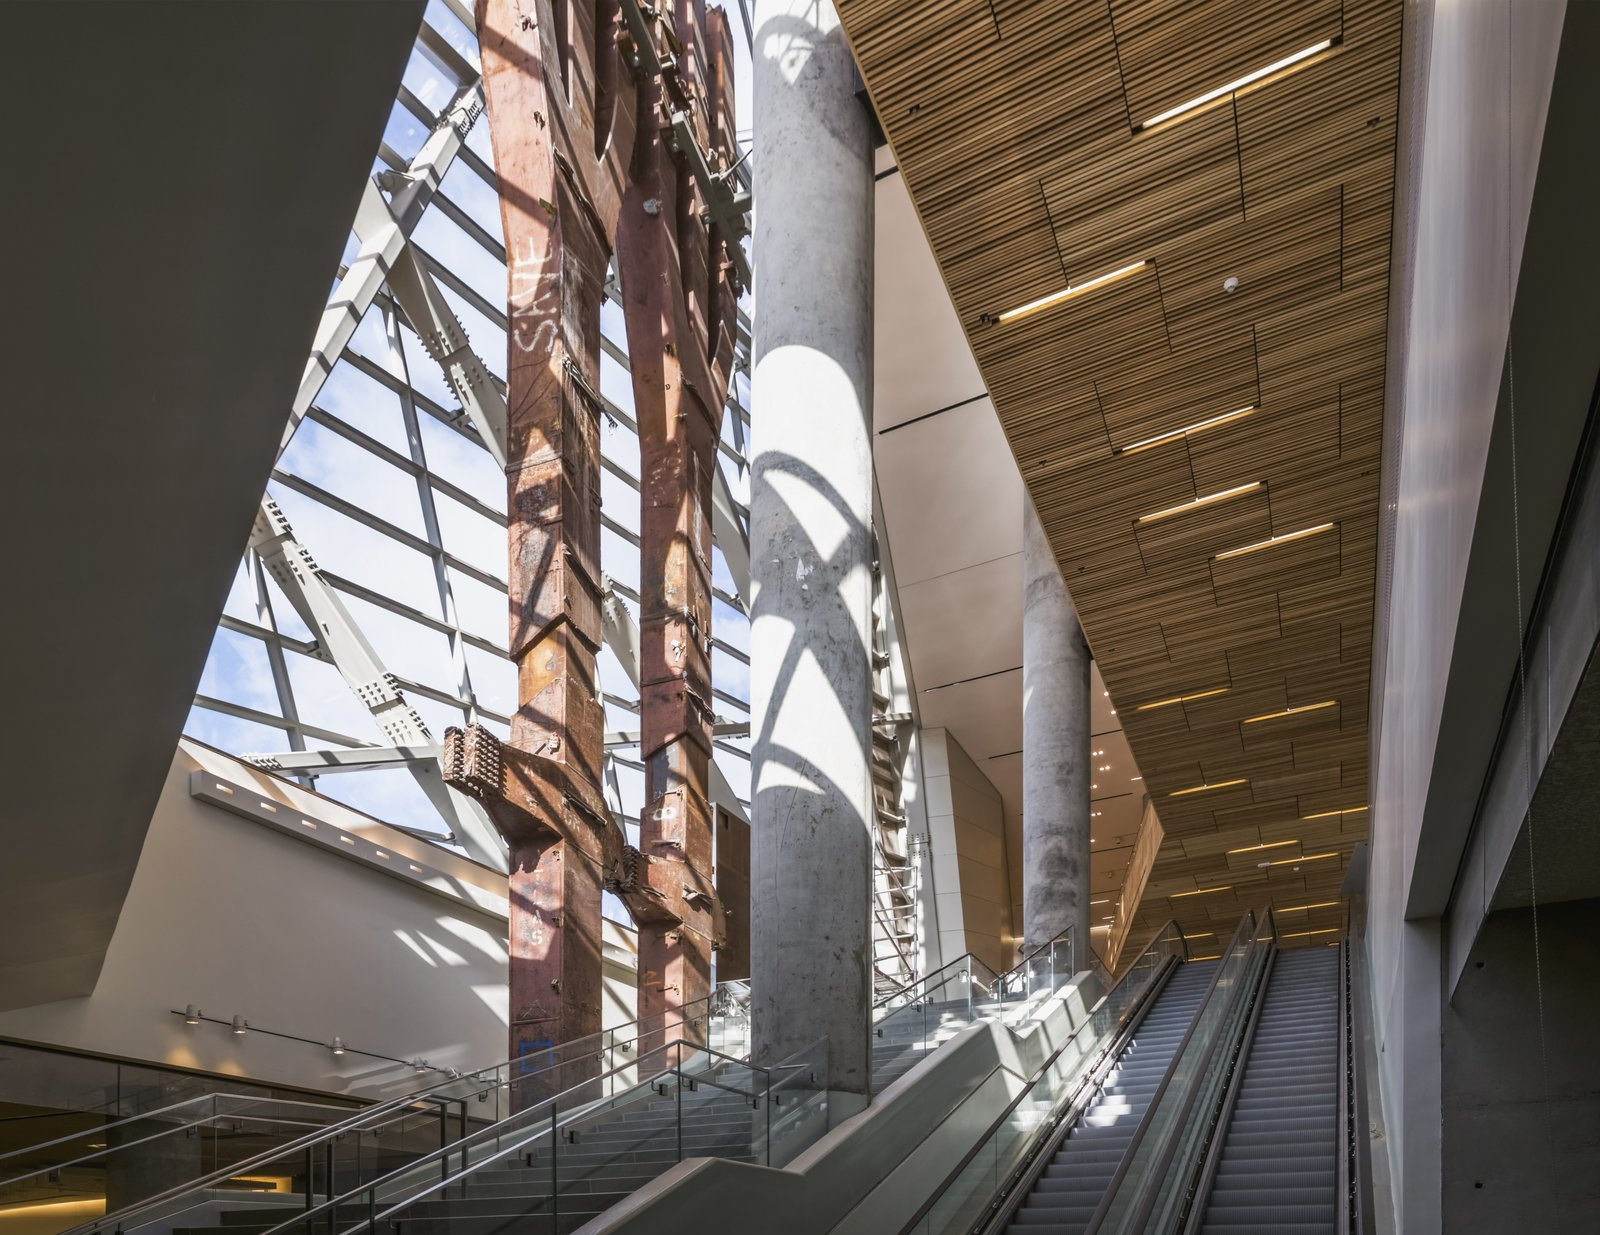 """The pavilion is outfitted with materials, including ash slats on the ceiling, that Craig Dykers, founding partner at Snøhetta, says were chosen to """"provide a sense of comfort as this is a site filled with a great deal of anxiety."""" At left are a pair of """"trident"""" columns that survived the collapse of the North Tower of the World Trade Center. Photo courtesy of Snøhetta.  Photo 3 of 14 in At Ground Zero Bedrock, the 9/11 Museum Prepares for Visitors"""